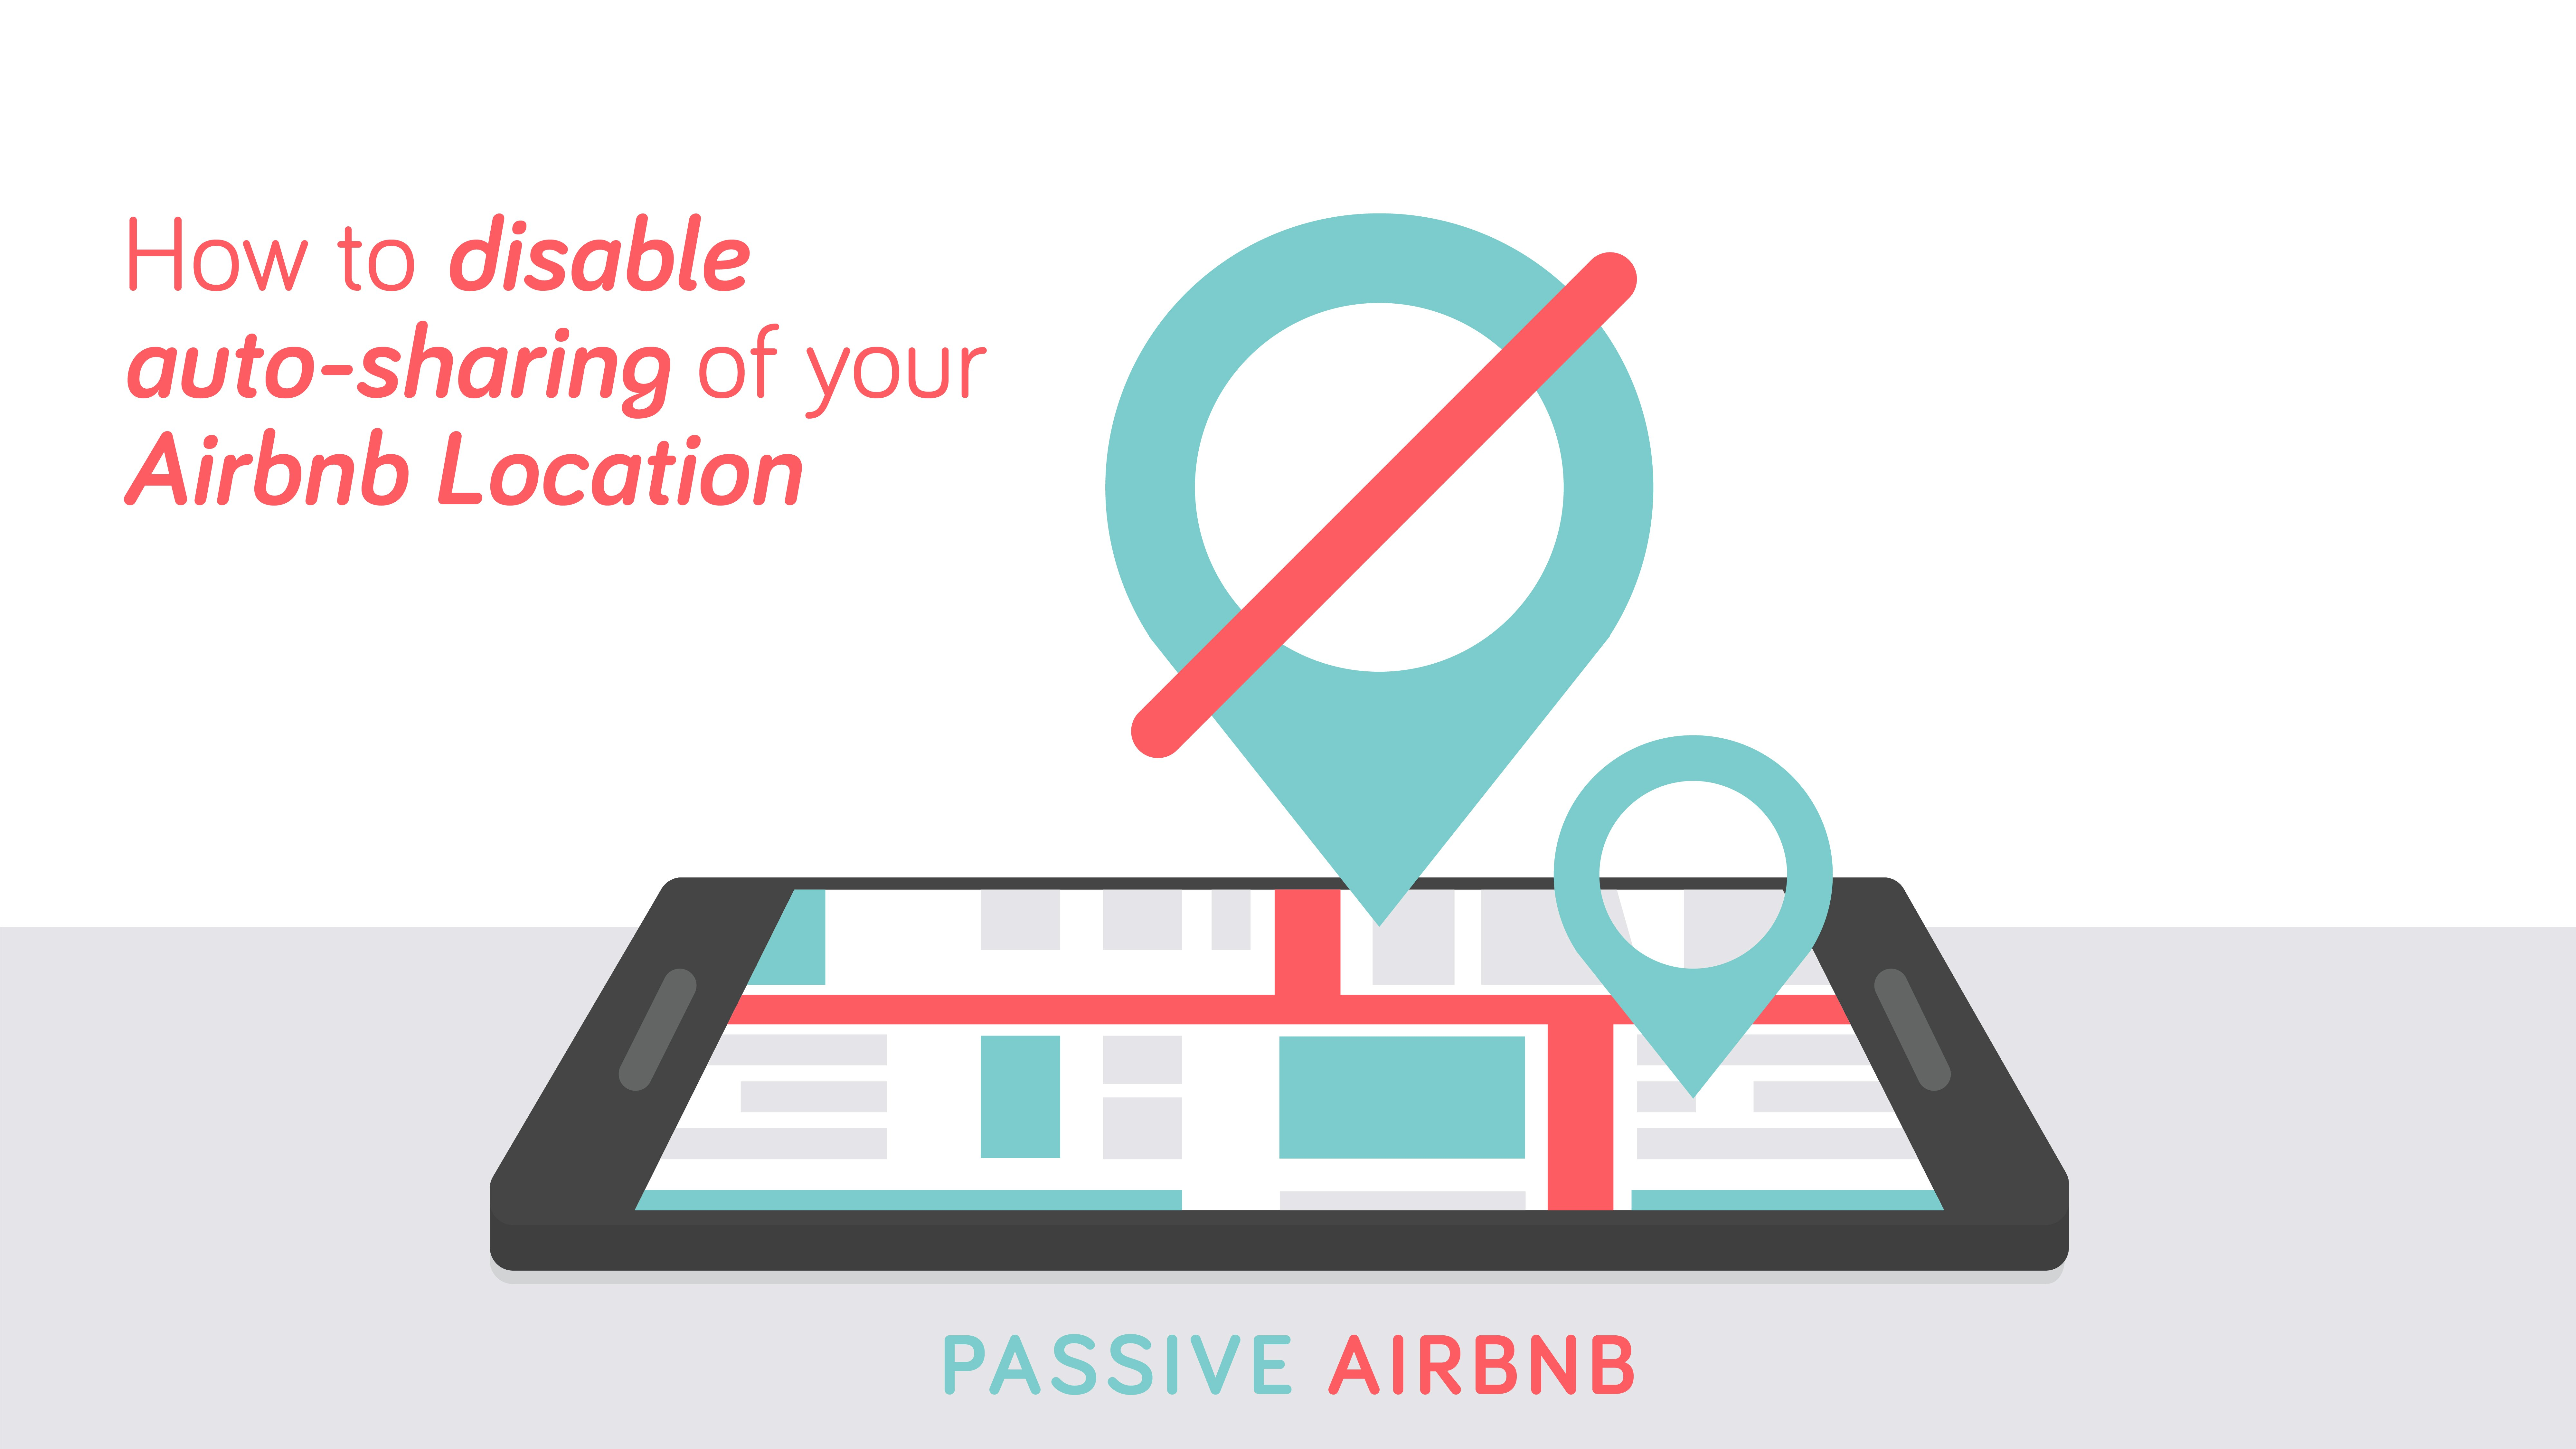 Disable Auto-sharing Airbnb Location